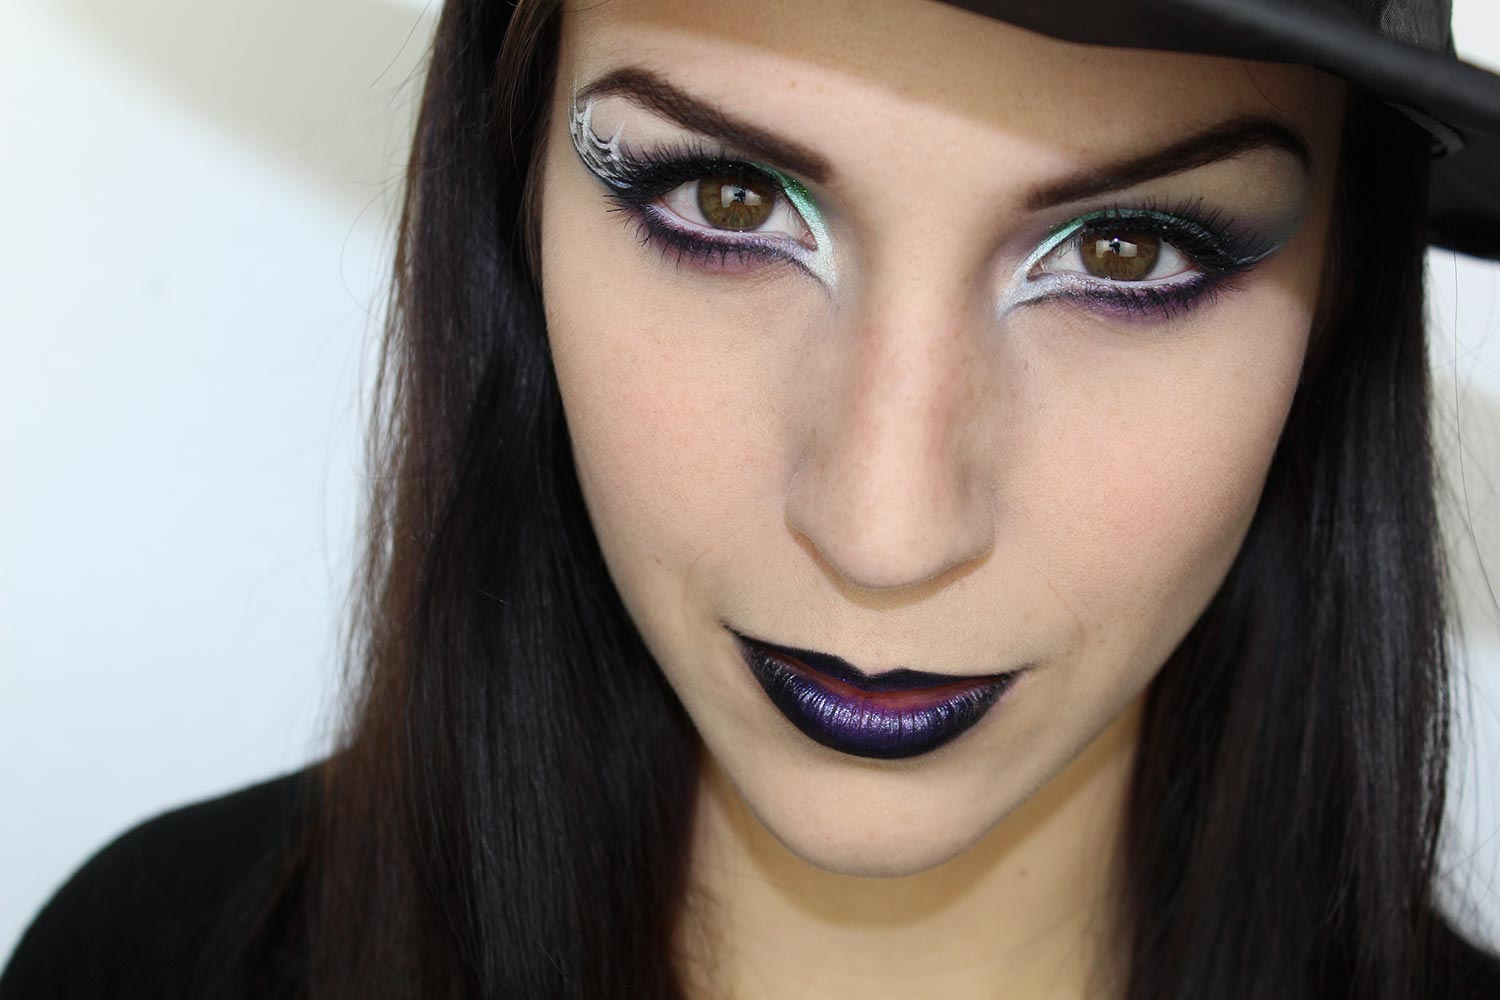 Maquillage d 39 halloween sorci re glam maquillage cynthia - Maquillage simple mais beau ...